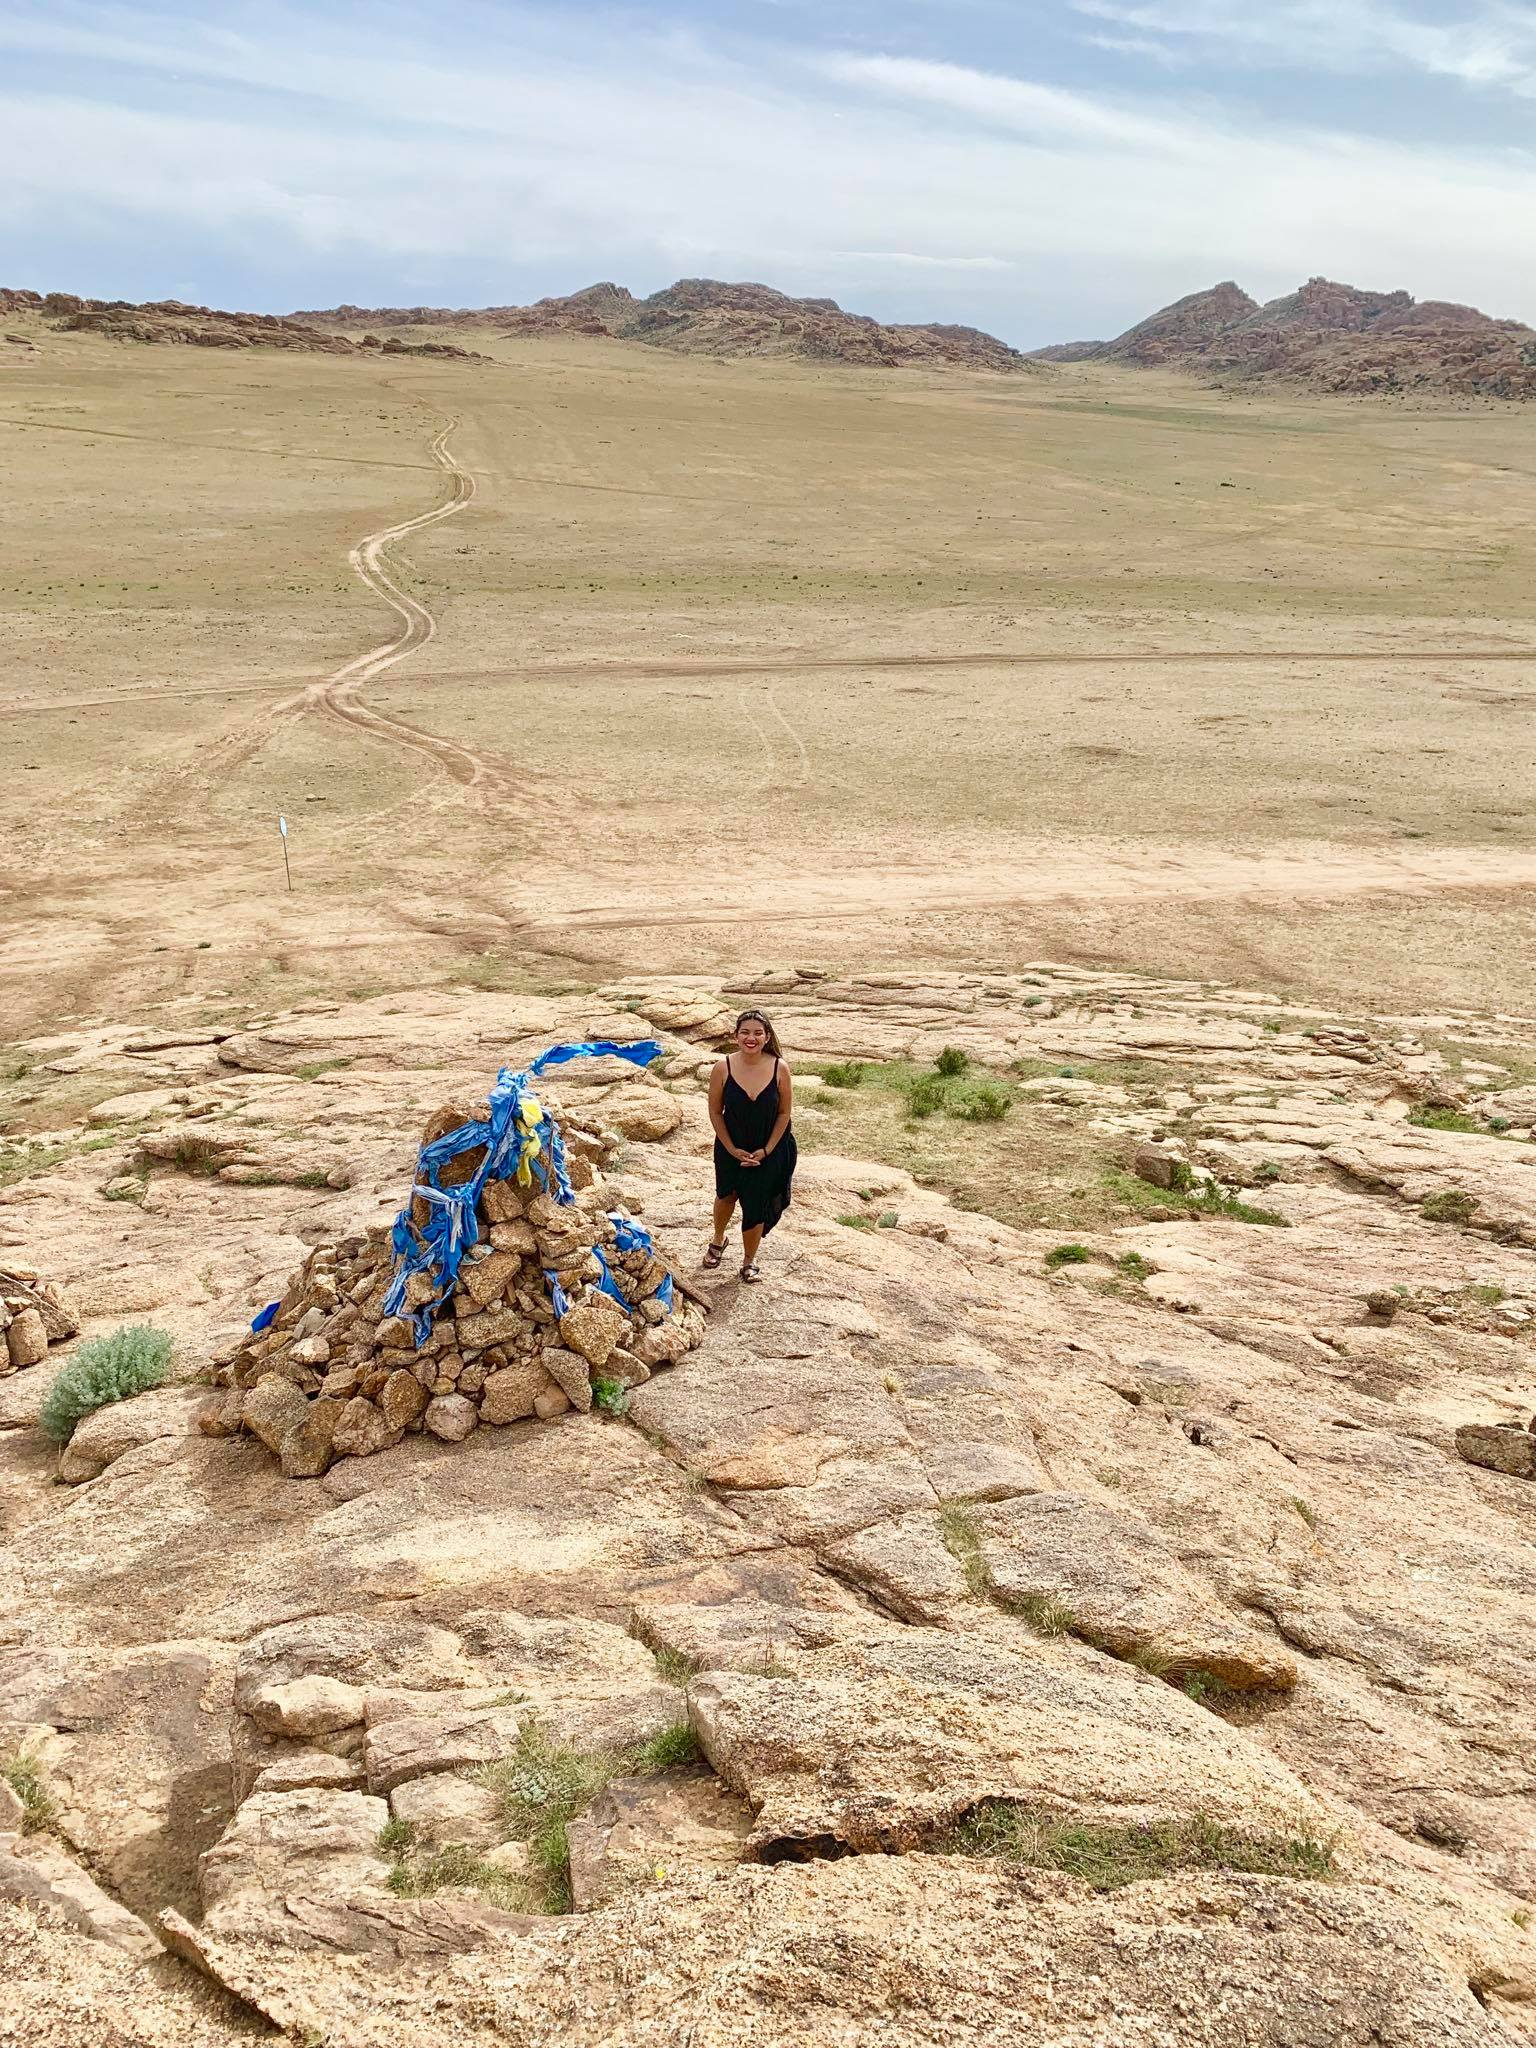 Kach Solo Travels in 2019 One of the hikes during my trip in Gobi desert2.jpg